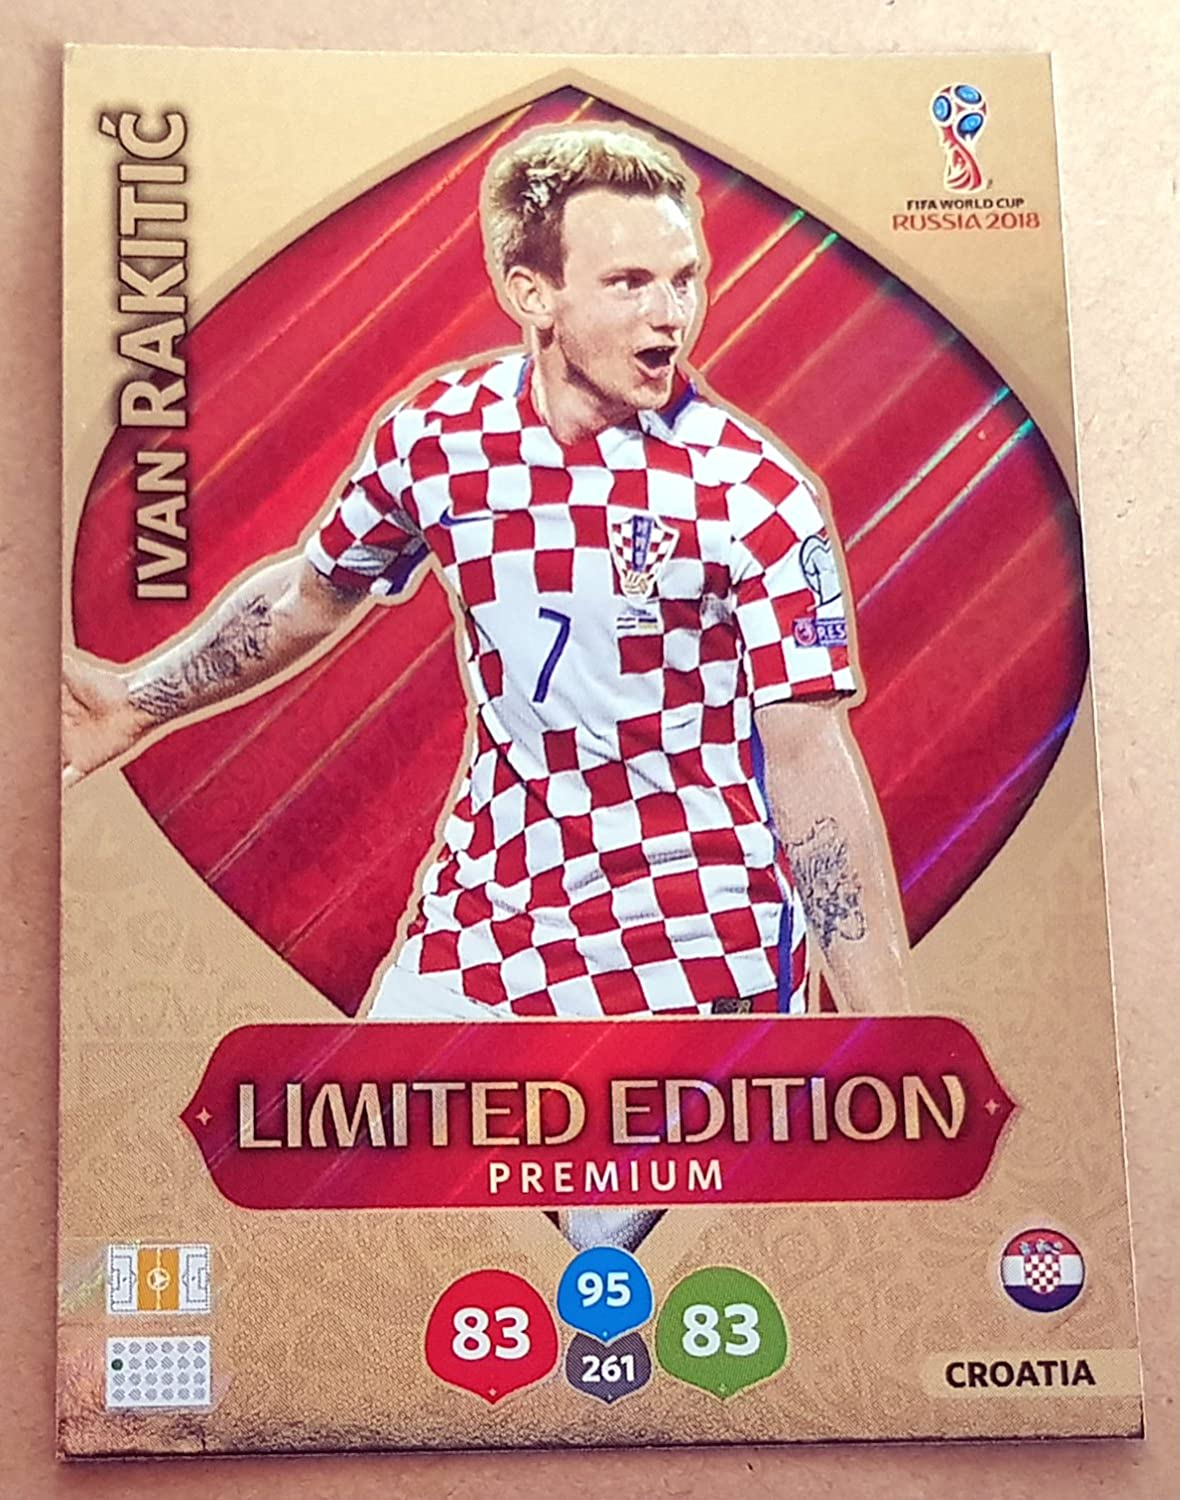 Adrenalyn XL FIFA World Cup 2018 Russland – Ivan Rakitic Premium Limited Edition Trading Card – Kroatien